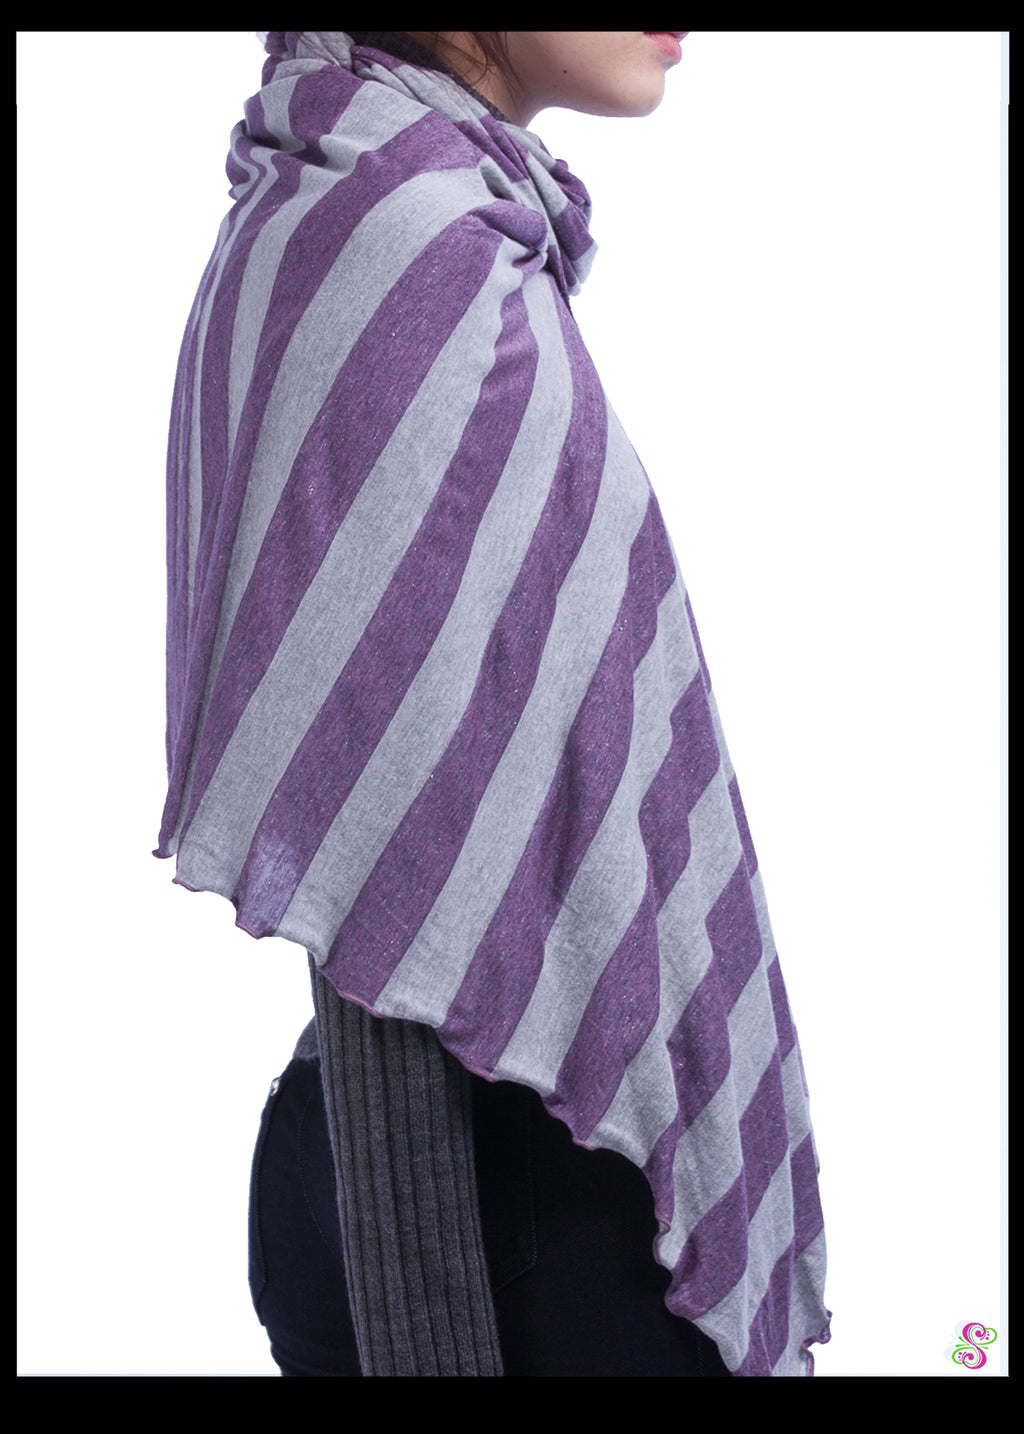 Carrie City Shawl, Viscose, Purple & Grey with silver sparkle